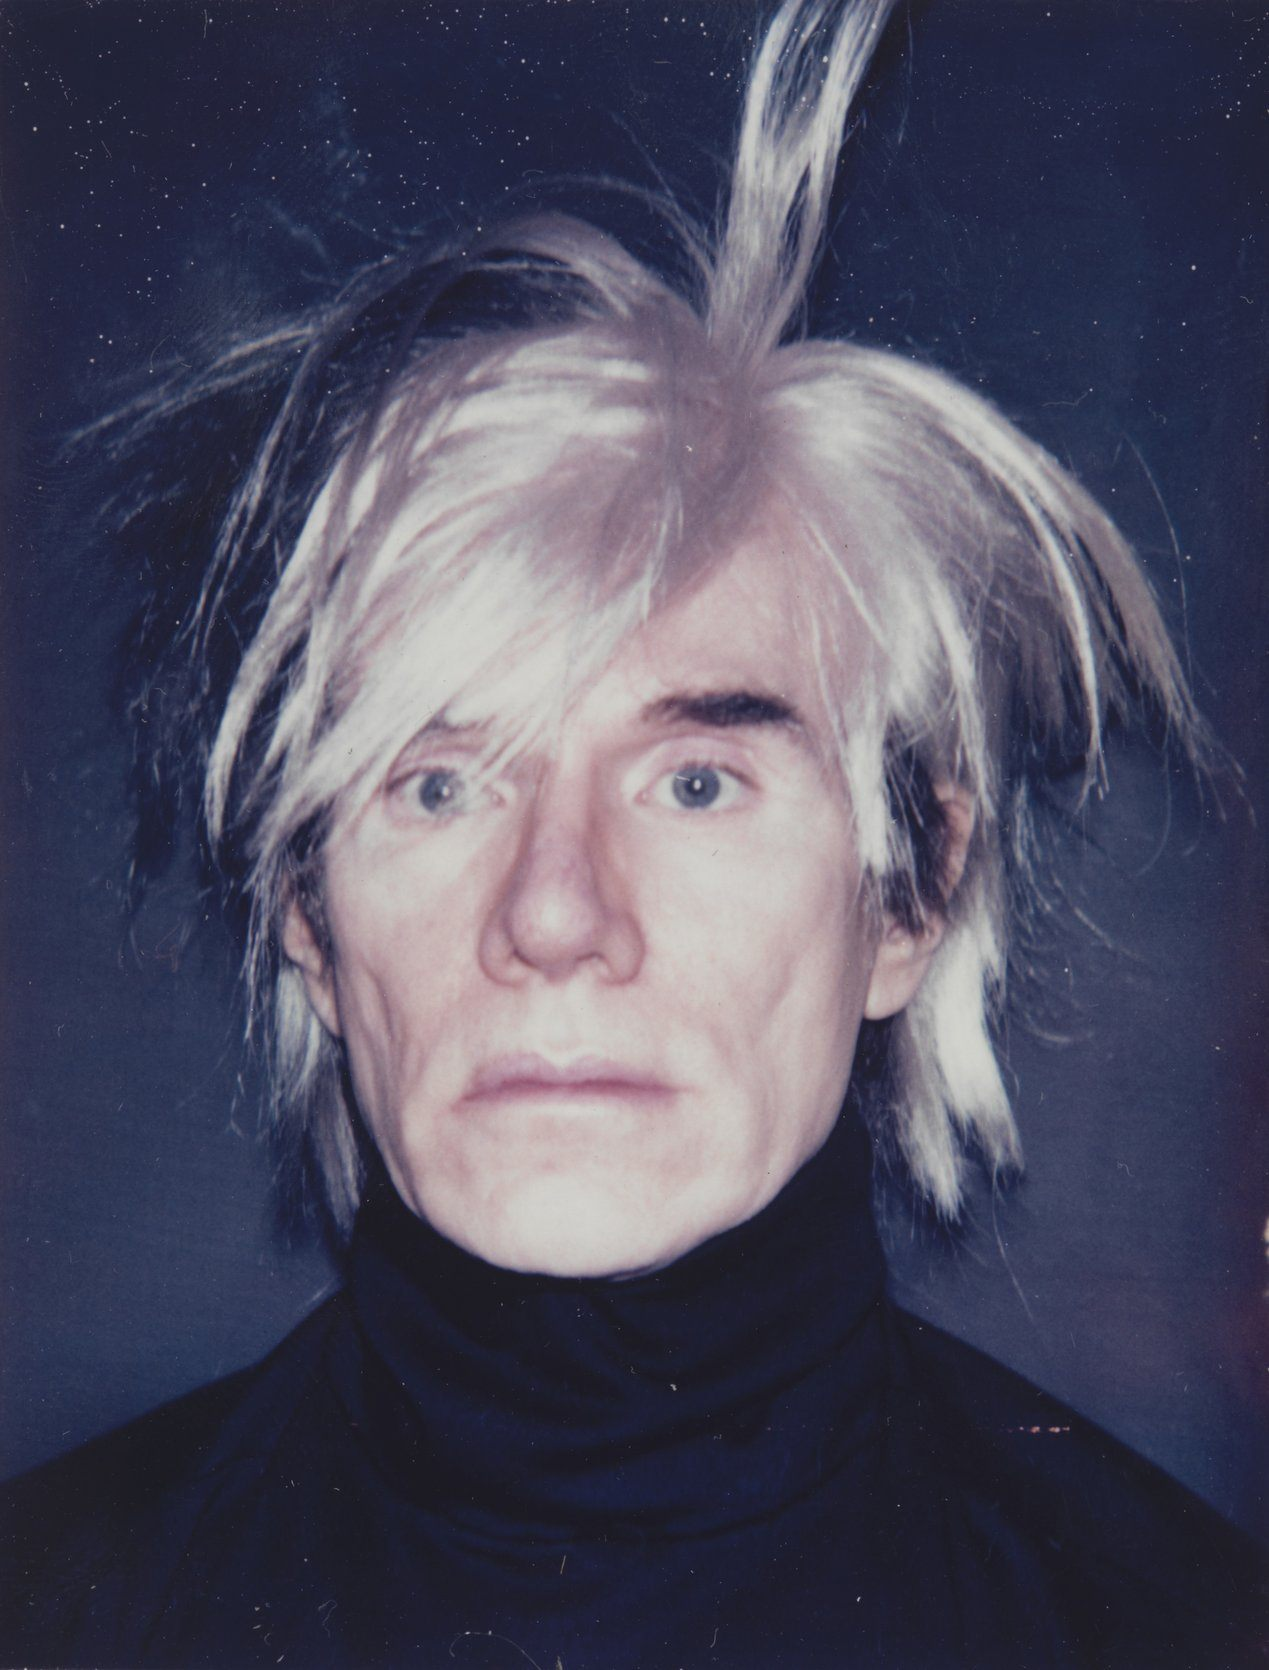 Andy Warhol Self-Portrait with Fright Wig, 1986. © 2019 The Andy Warhol Foundation for the Visual Arts, Inc. / Artists Rights Society (ARS), New York